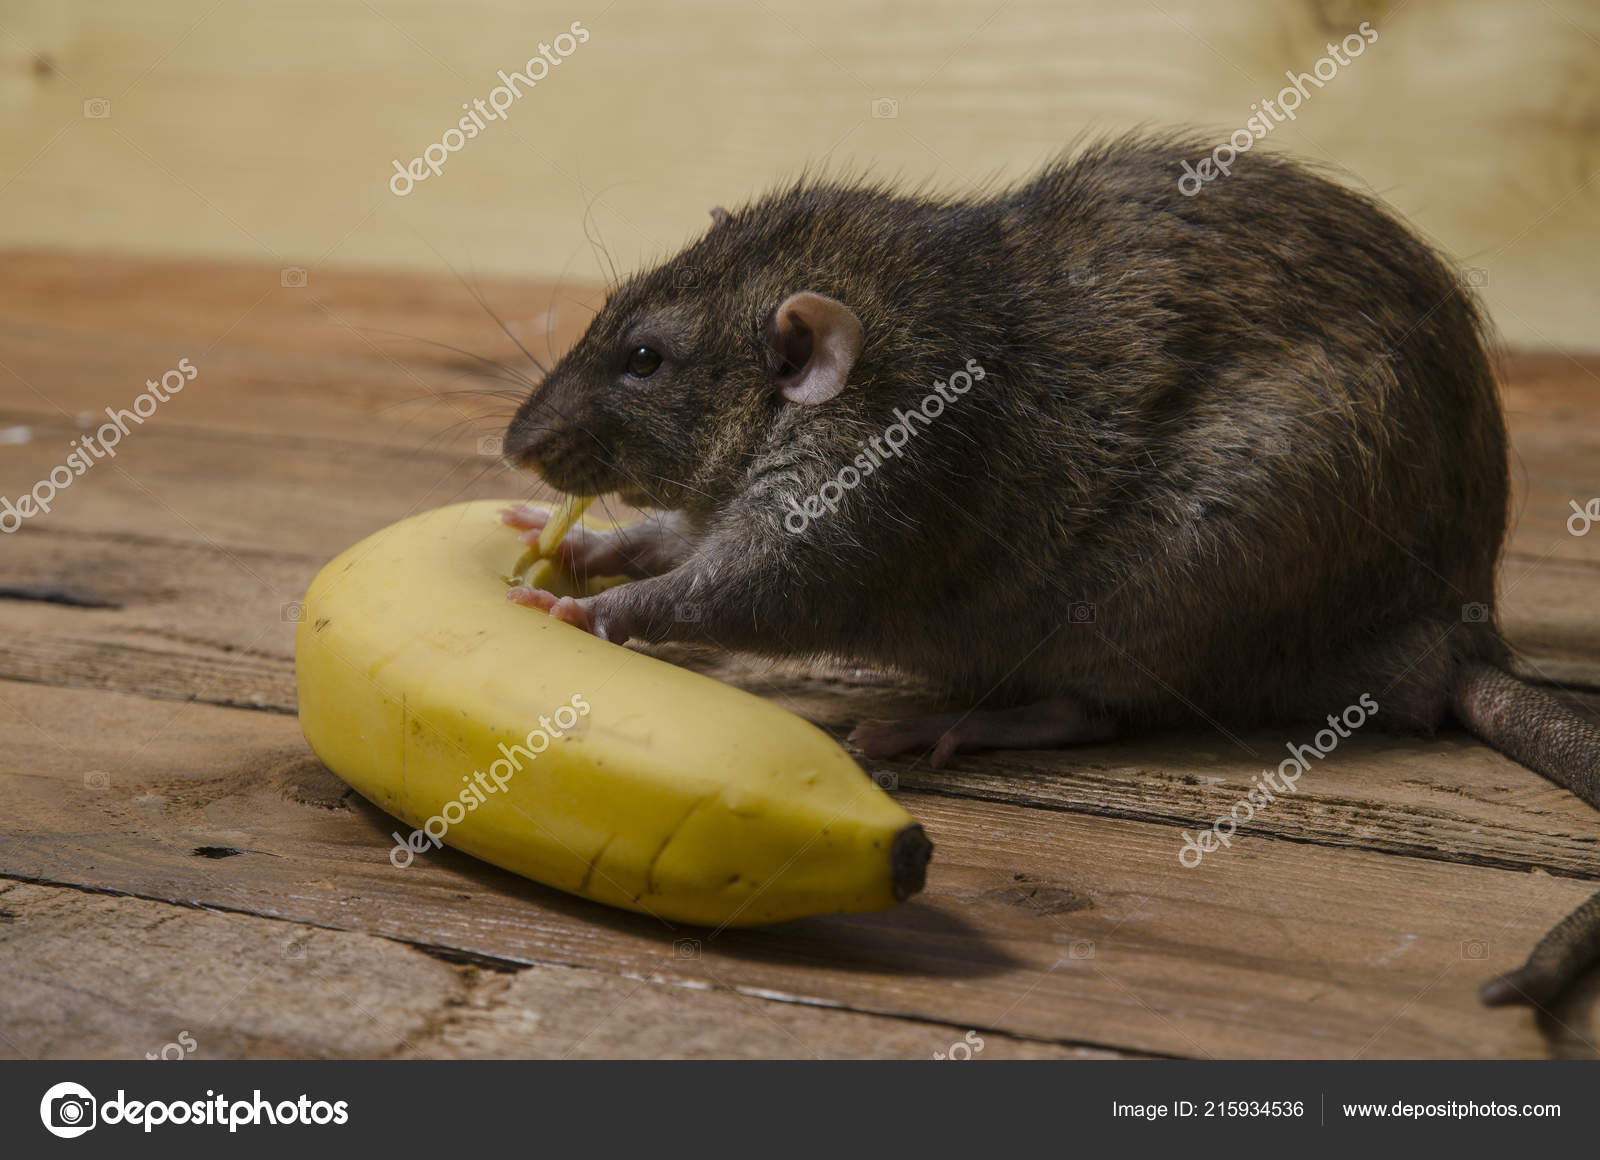 Banana On Table A rat is eating a banana on a wooden tableu2013 stock image